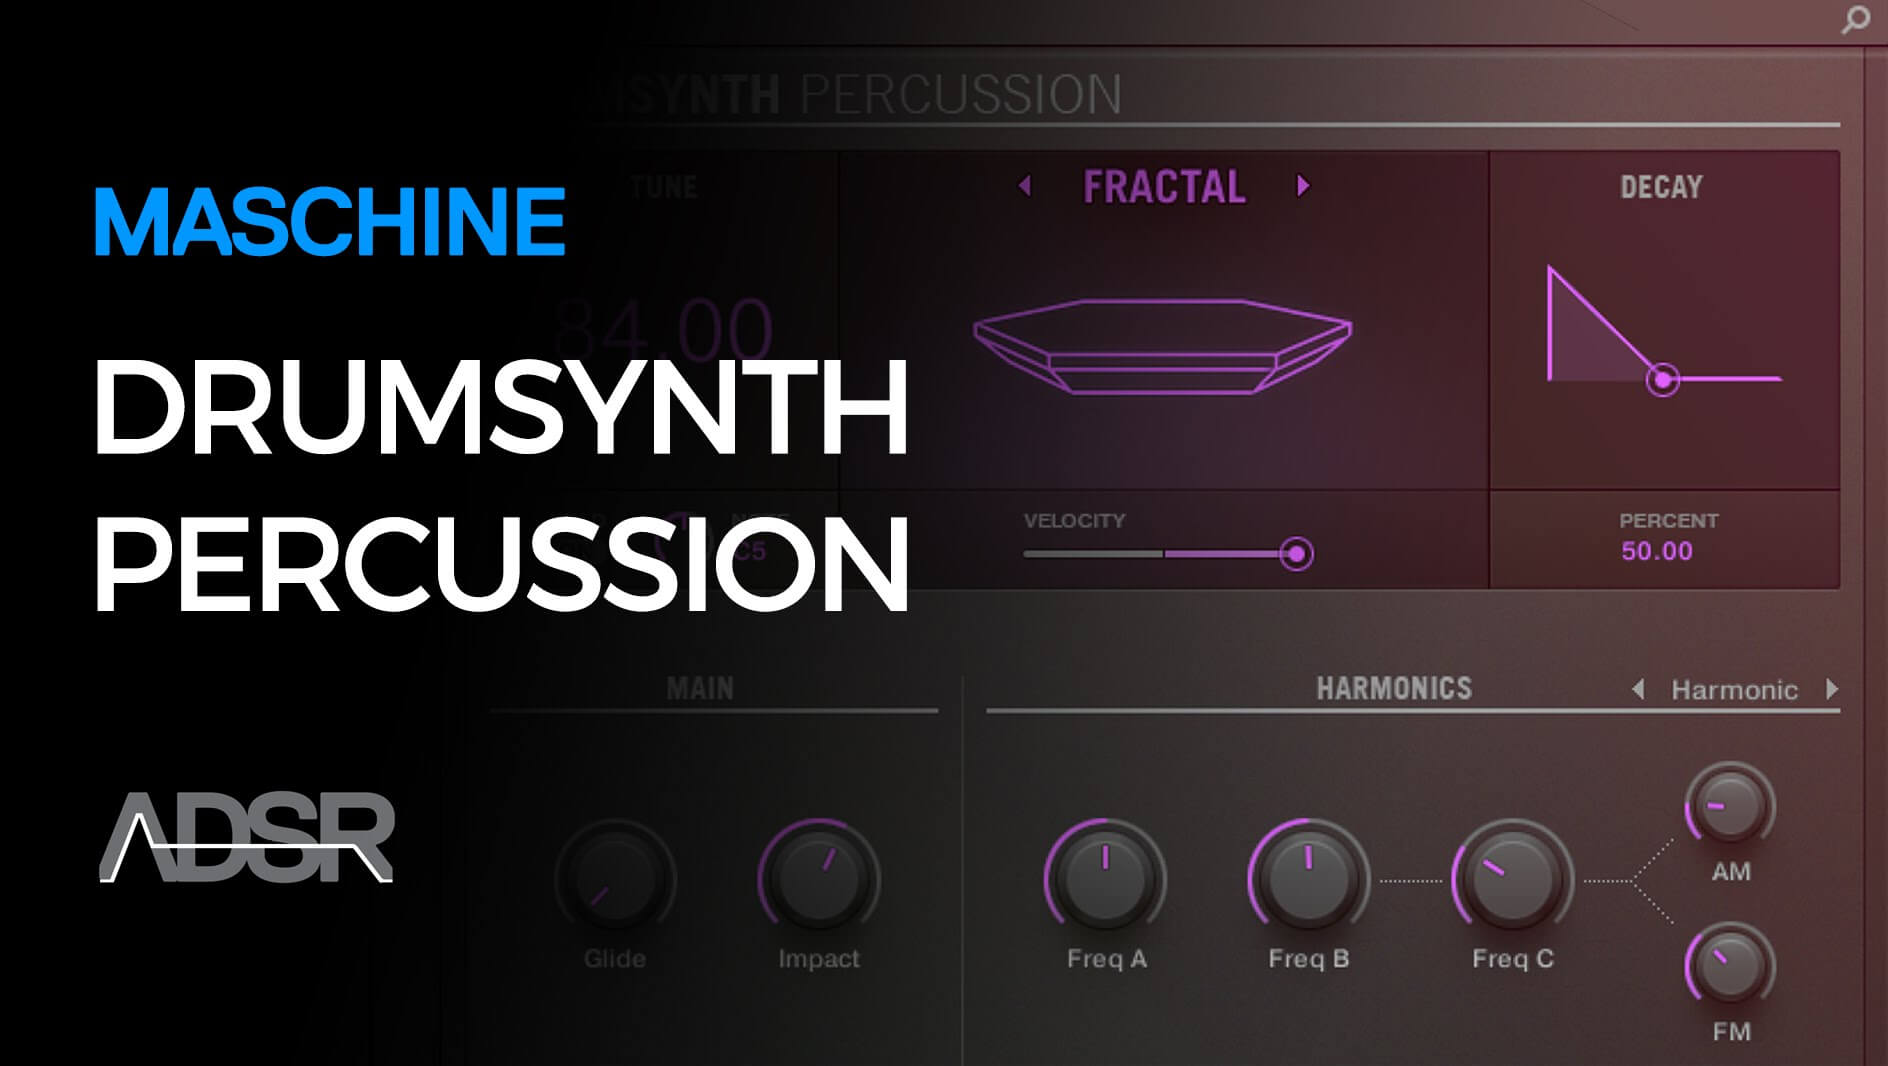 Percussion - Working with Maschine Drumsynth